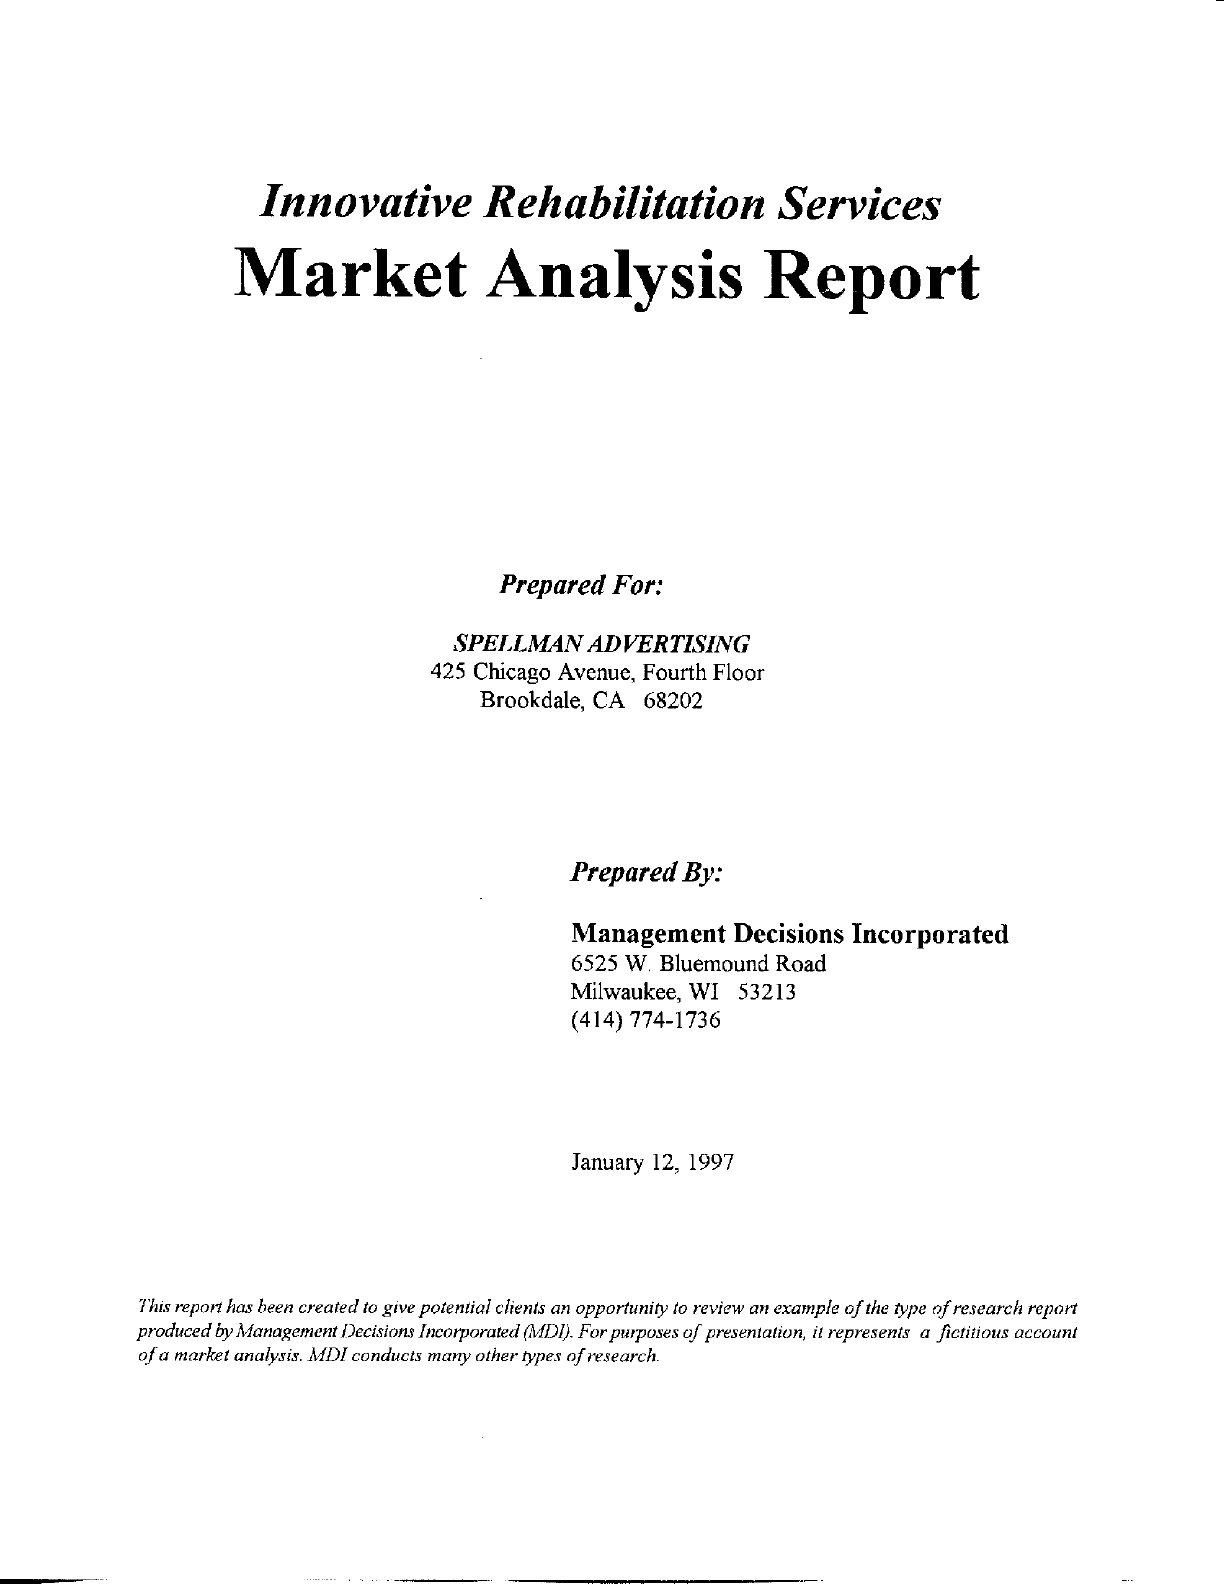 Marketing Report Examples and 34 Best Samples Of Analysis Report Templates Thogati